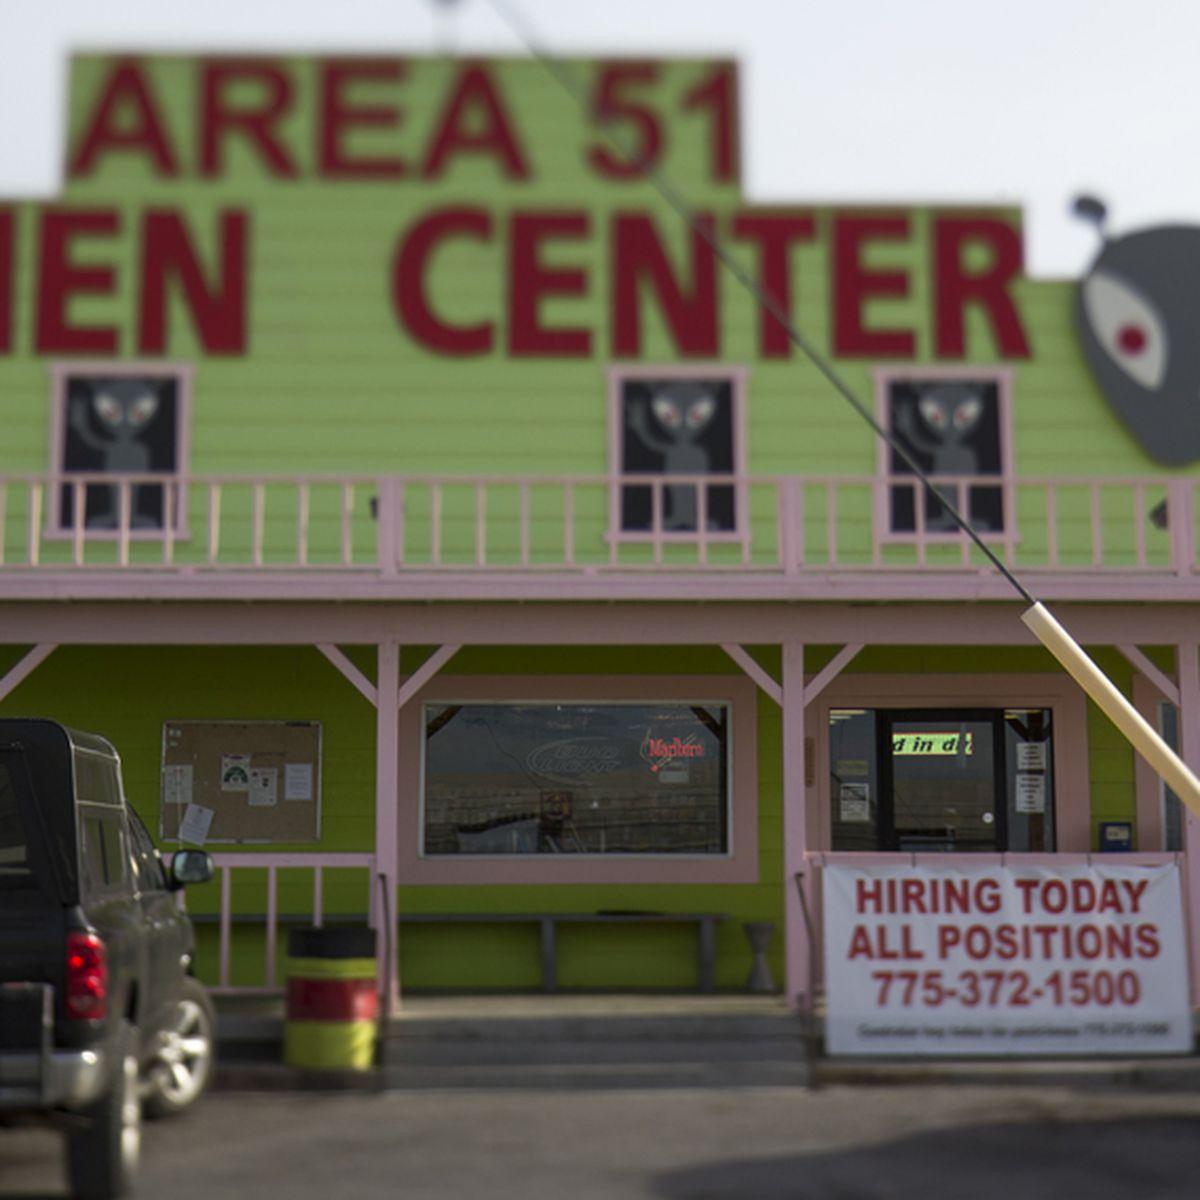 Storm Area 51: Alienstock music festival cancelled to avoid